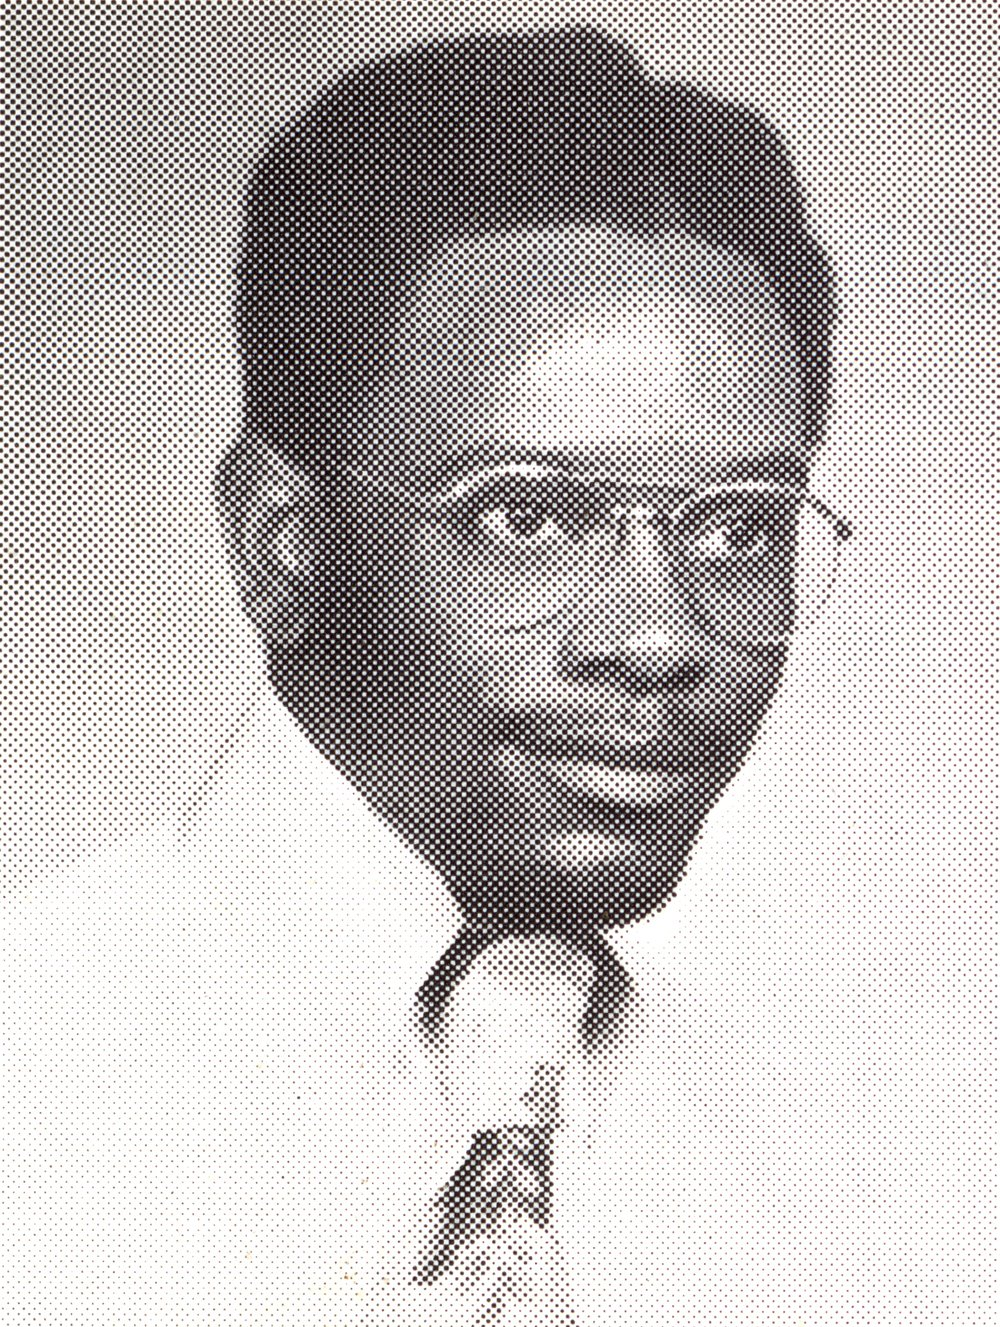 CG_1971_high_school_yearbook_photo_8.5x11 copy.jpg